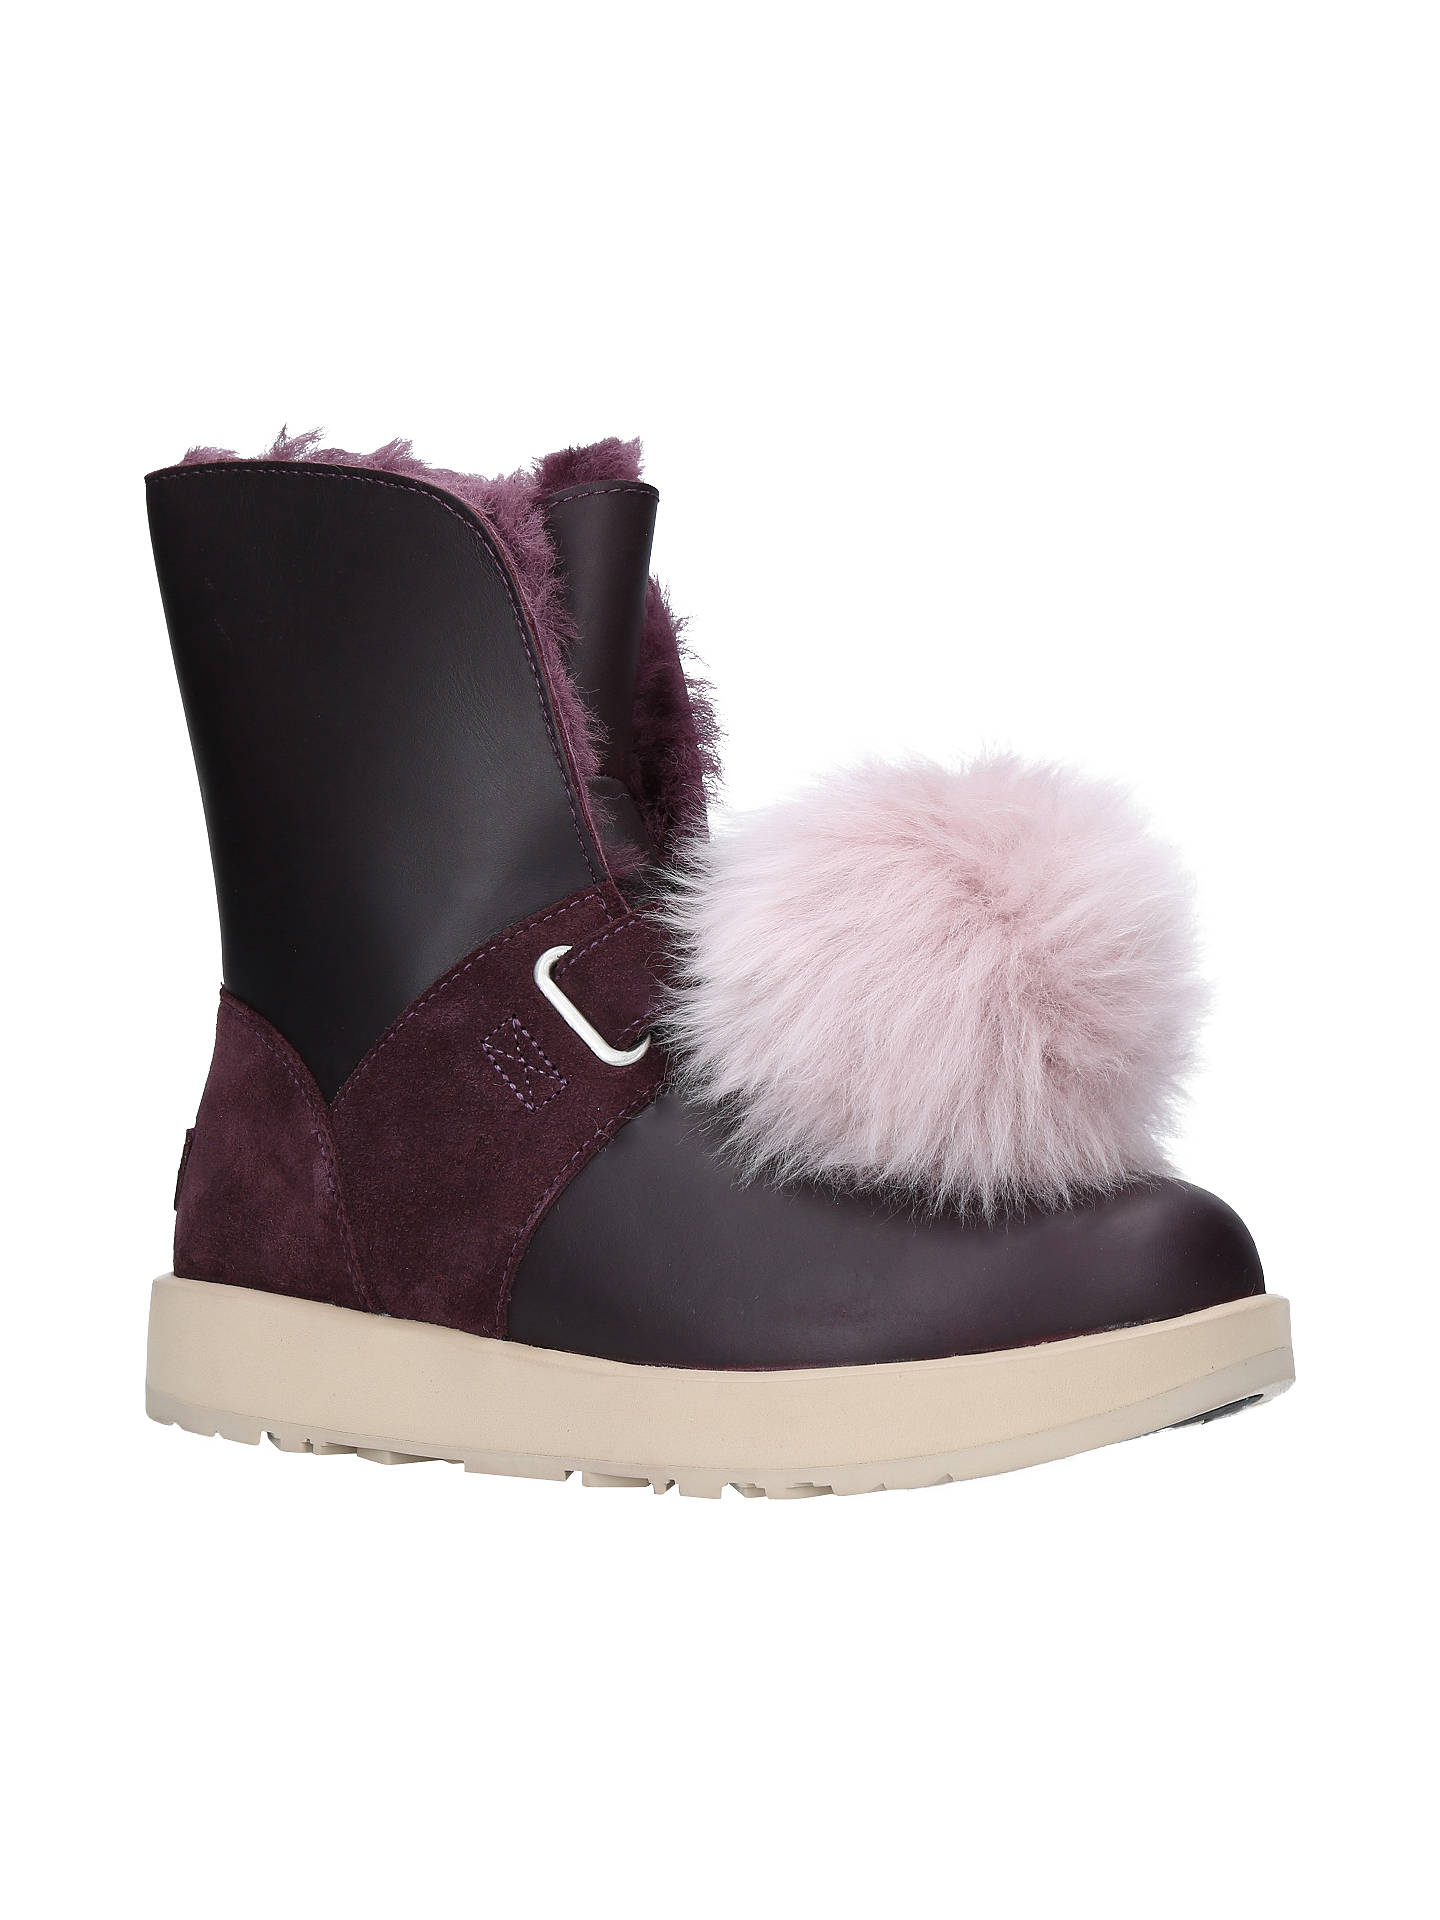 American Girl Purple Shearling Boots for doll NEW IN BOX